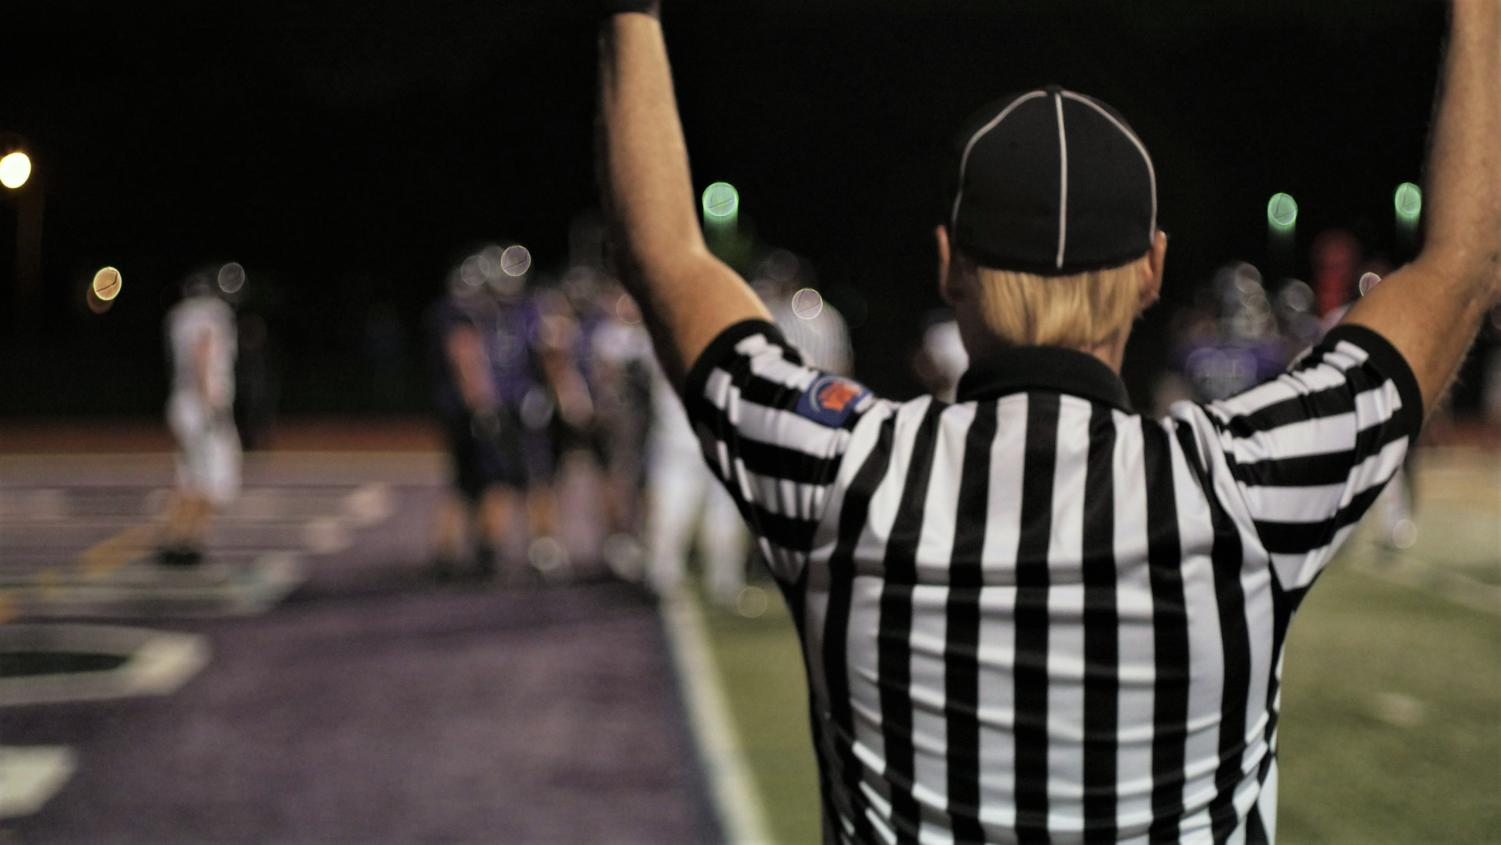 BLOWOUT: the referee signals for a score after a Drew Cassens rushing touchdown.